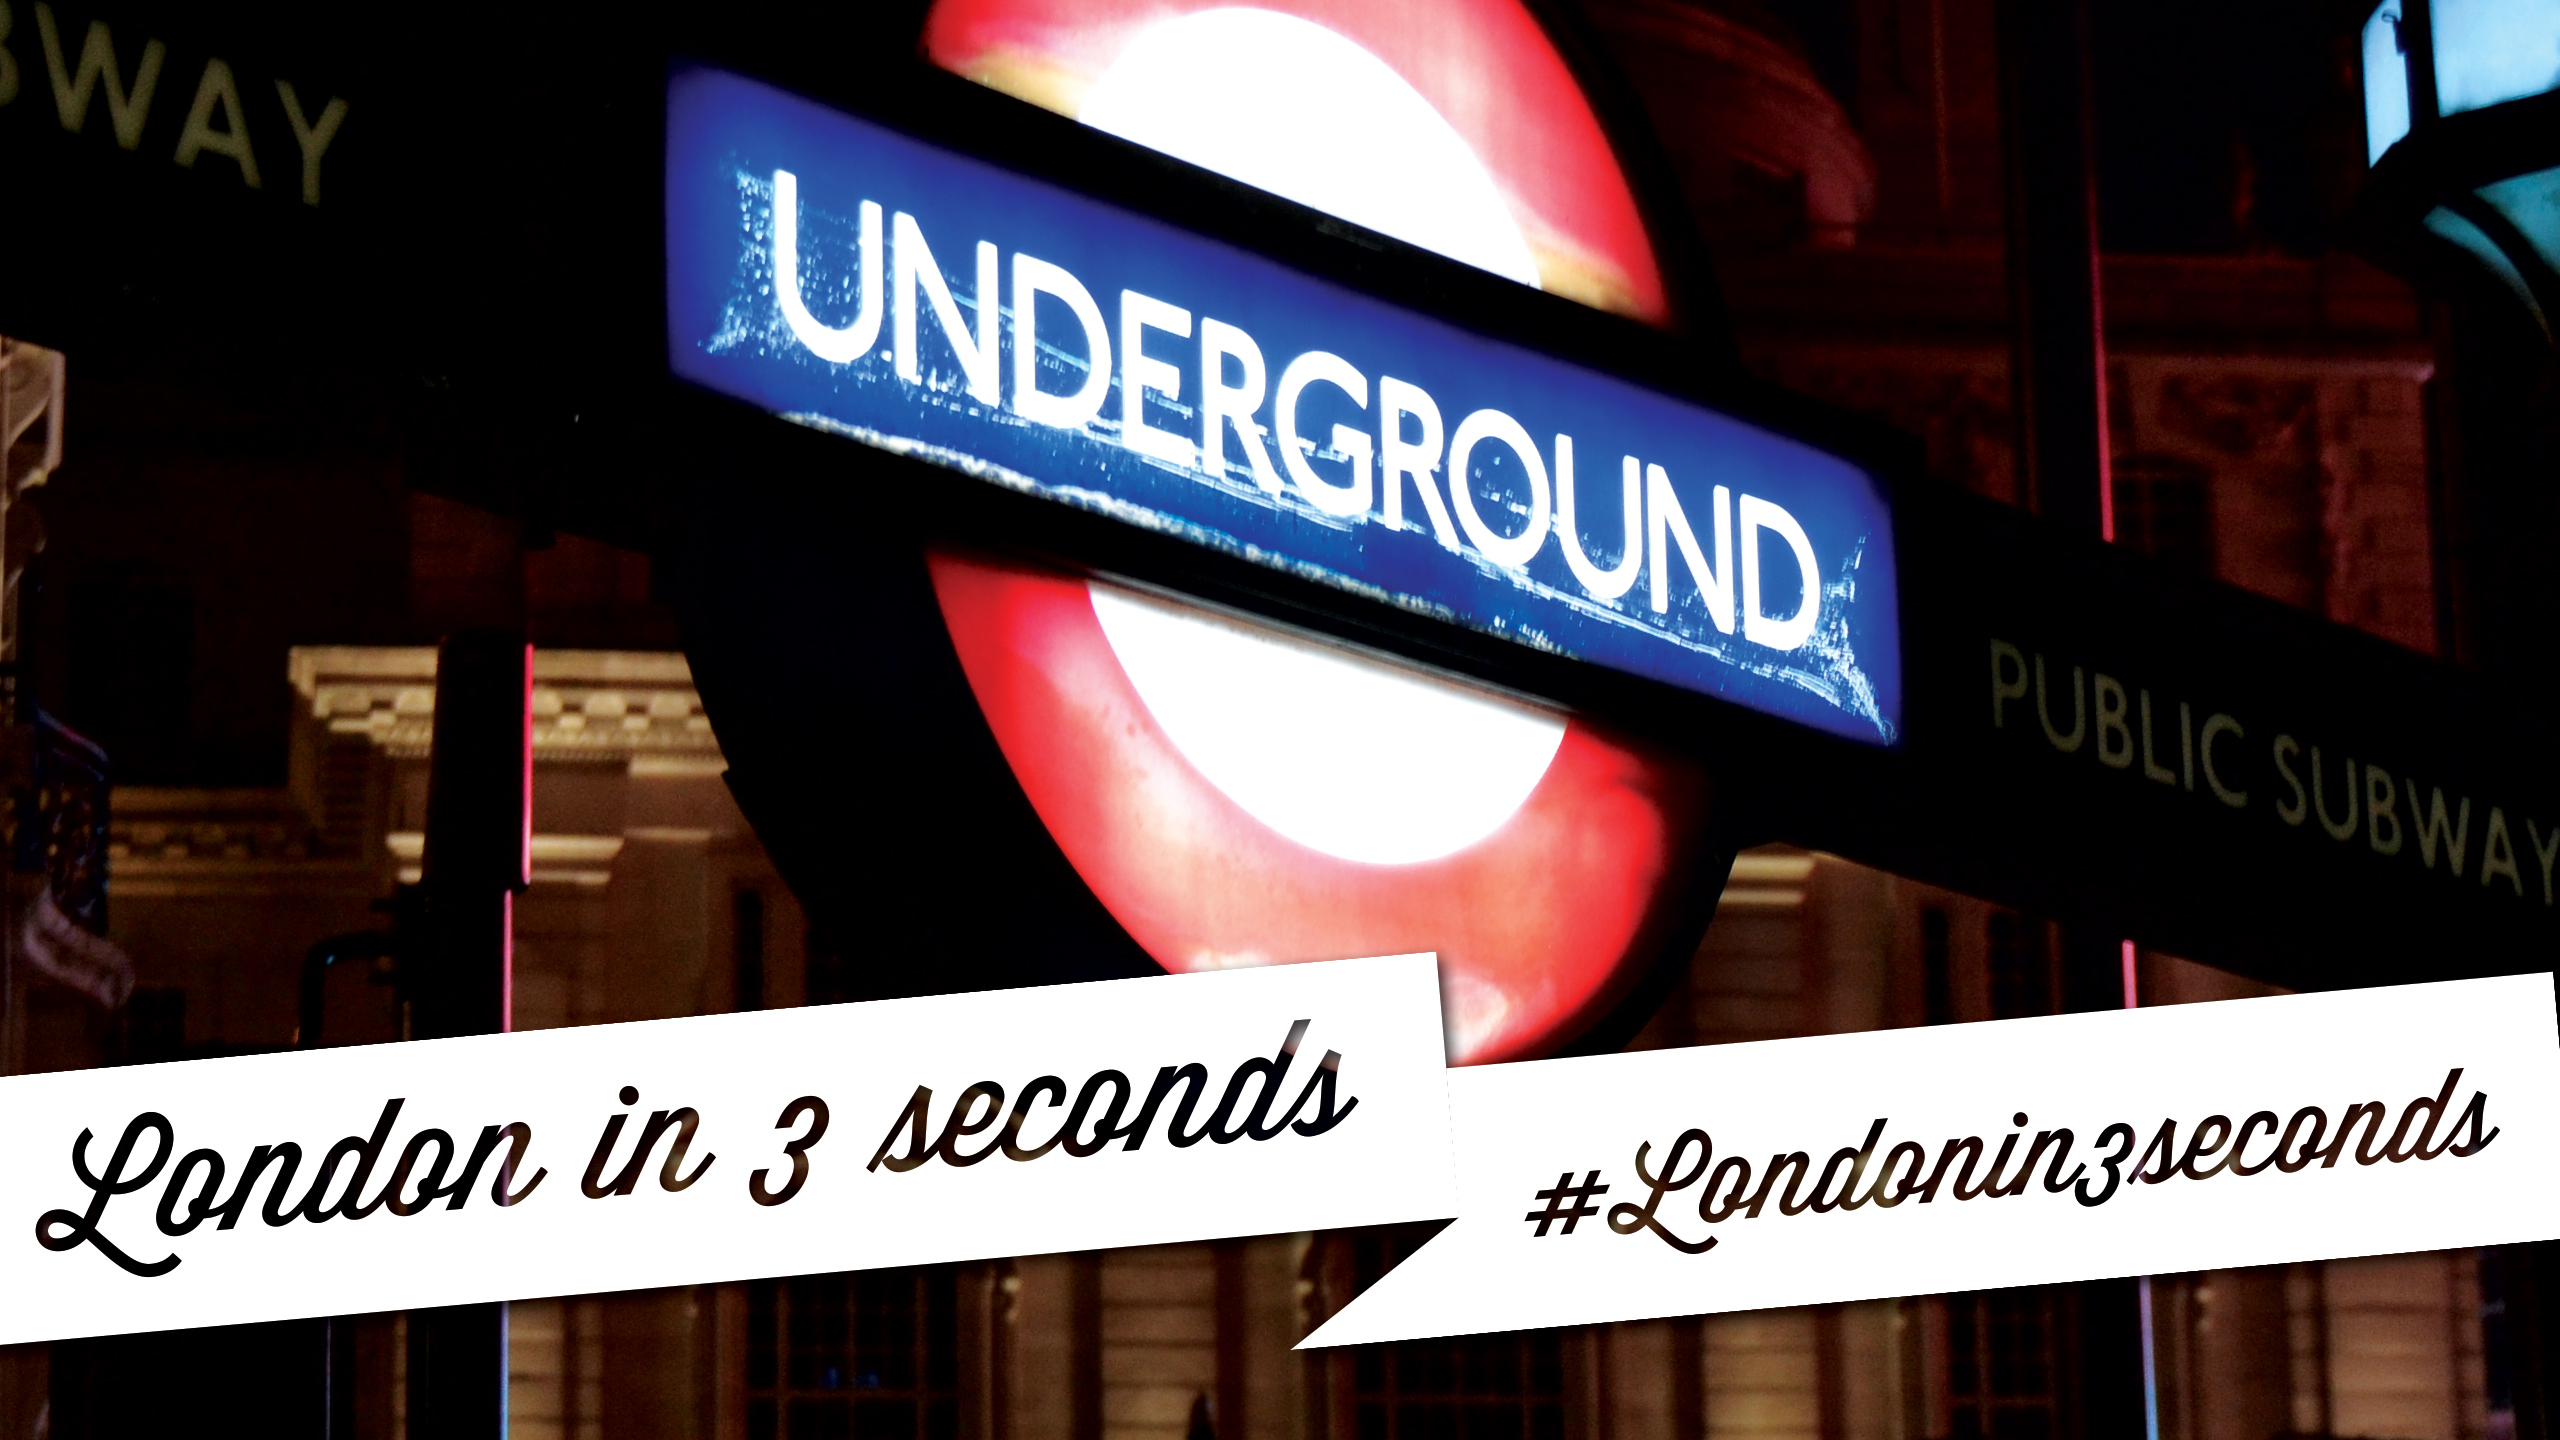 #Londonin3seconds London in 3 seconds